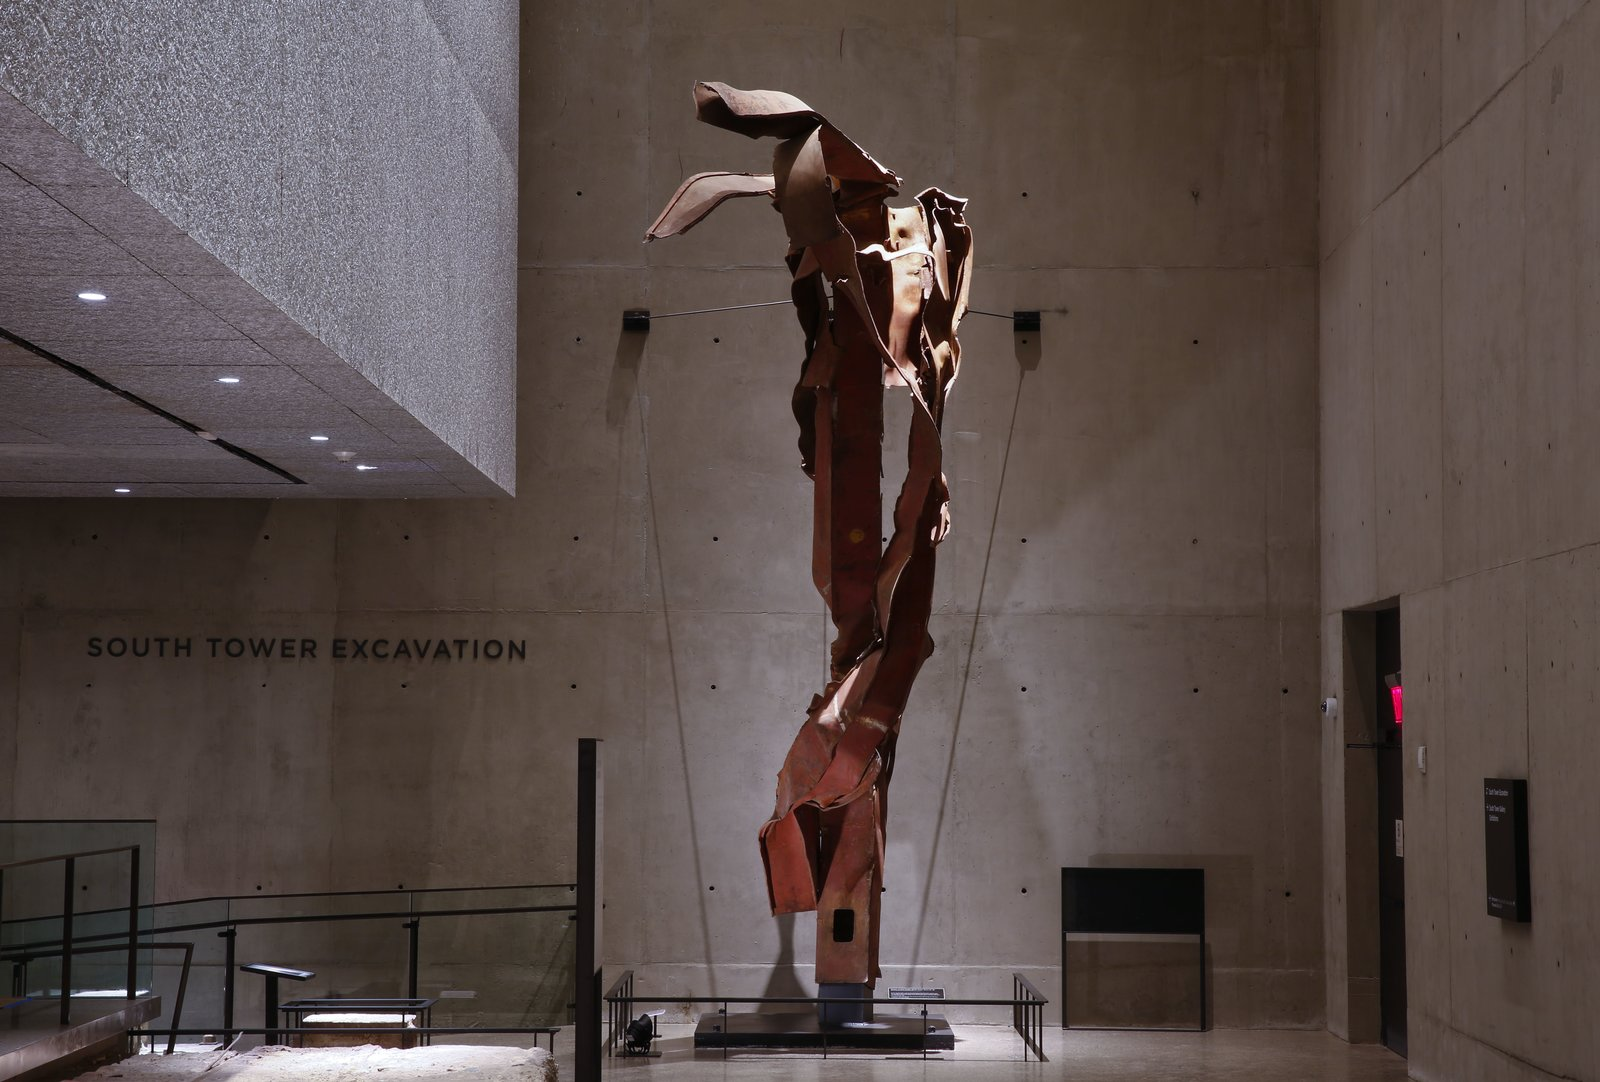 """A section of """"impact steel"""" from the World Trade Center is on display outside the footprint of the South Tower inside the National September 11 Memorial Museum.  Photo 8 of 14 in At Ground Zero Bedrock, the 9/11 Museum Prepares for Visitors"""